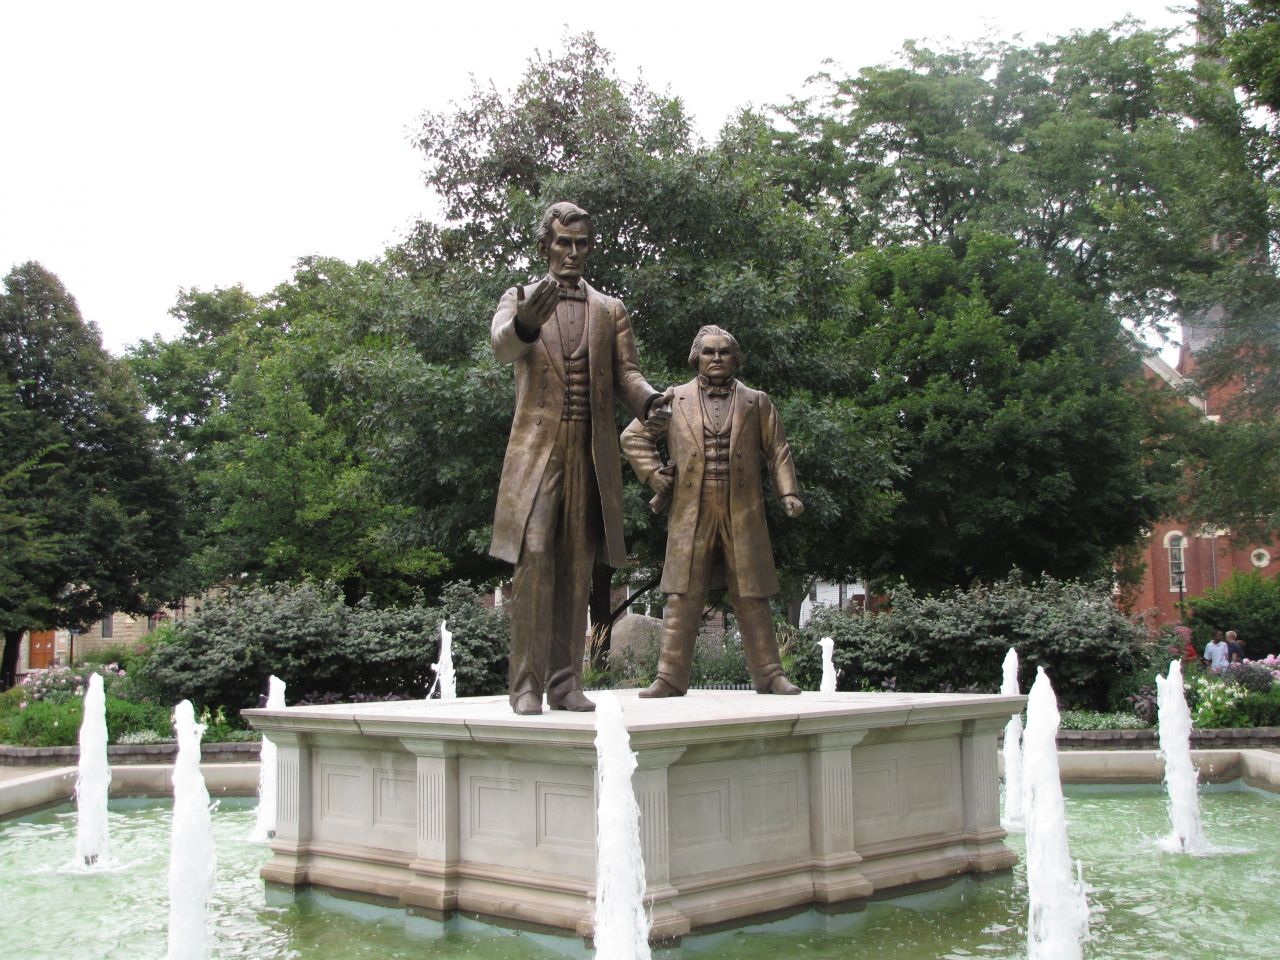 Statues of Lincoln and Douglas in Washington Park, site of the 1st Lincoln-Douglas debate on Aug. 21, 1858.